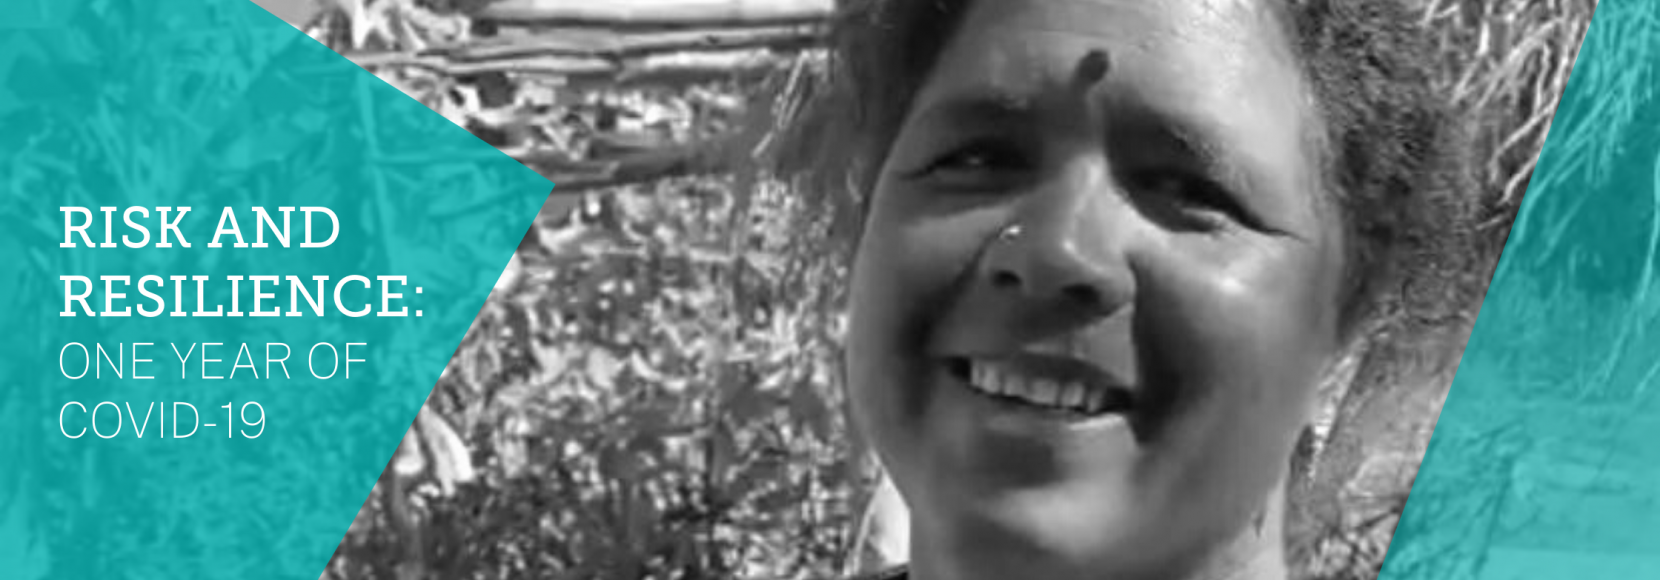 N. Mangamma is one of many small-scale farmers in India impacted by the COVID-19 pandemic.